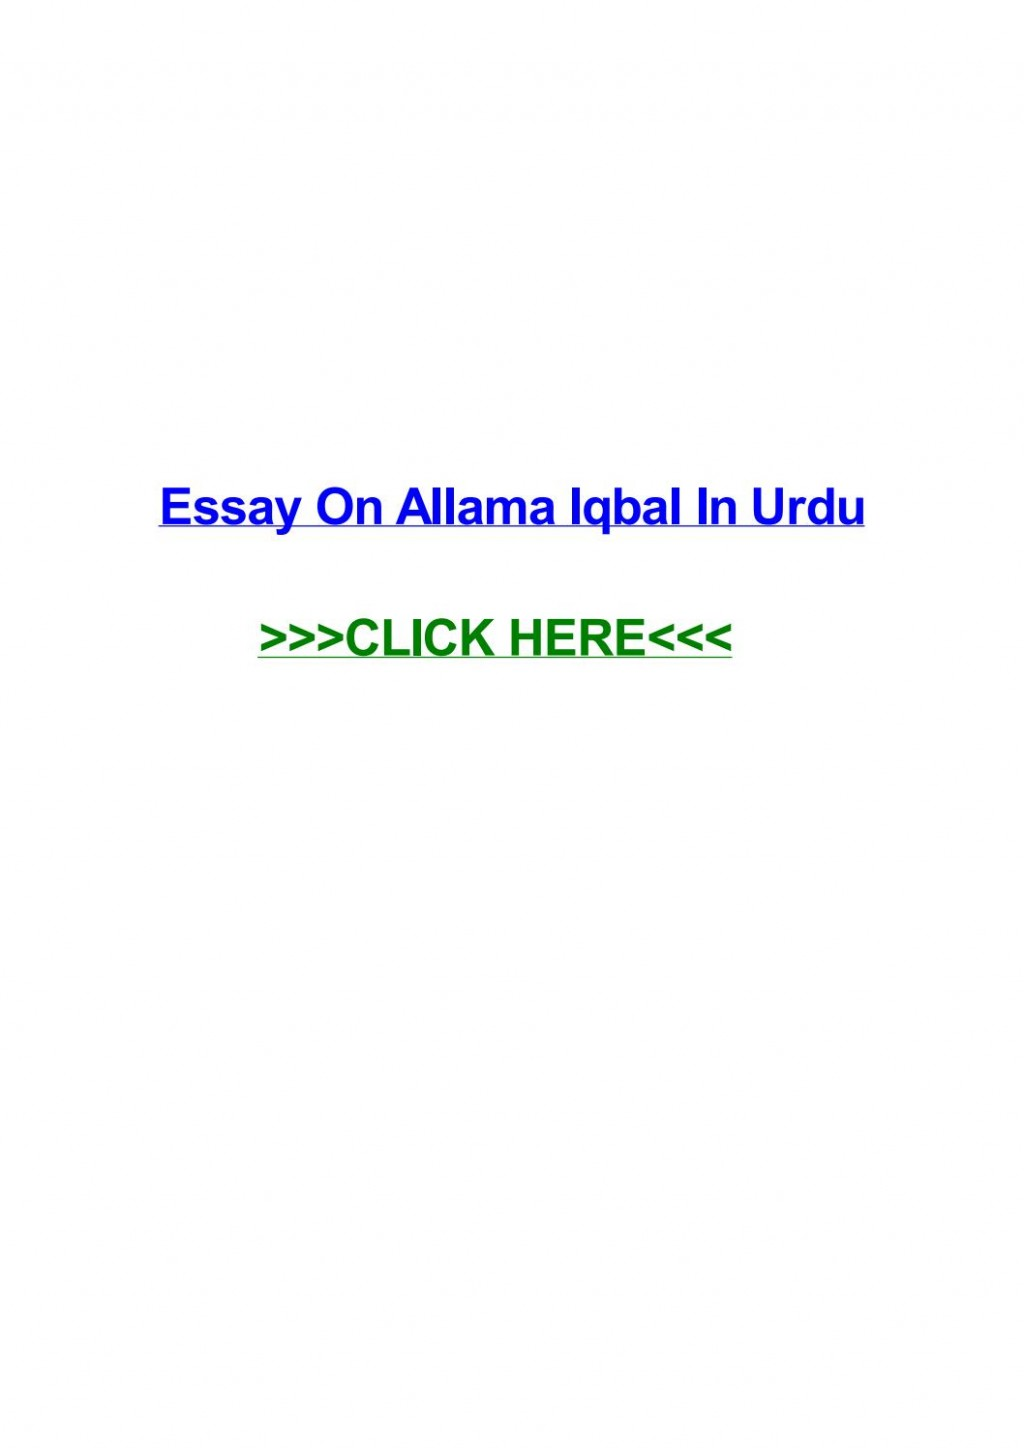 019 Essay Example Page 1 Urdu Allama Dreaded Iqbal On In For Class 10 With Poetry Ka Shaheen Headings And Large